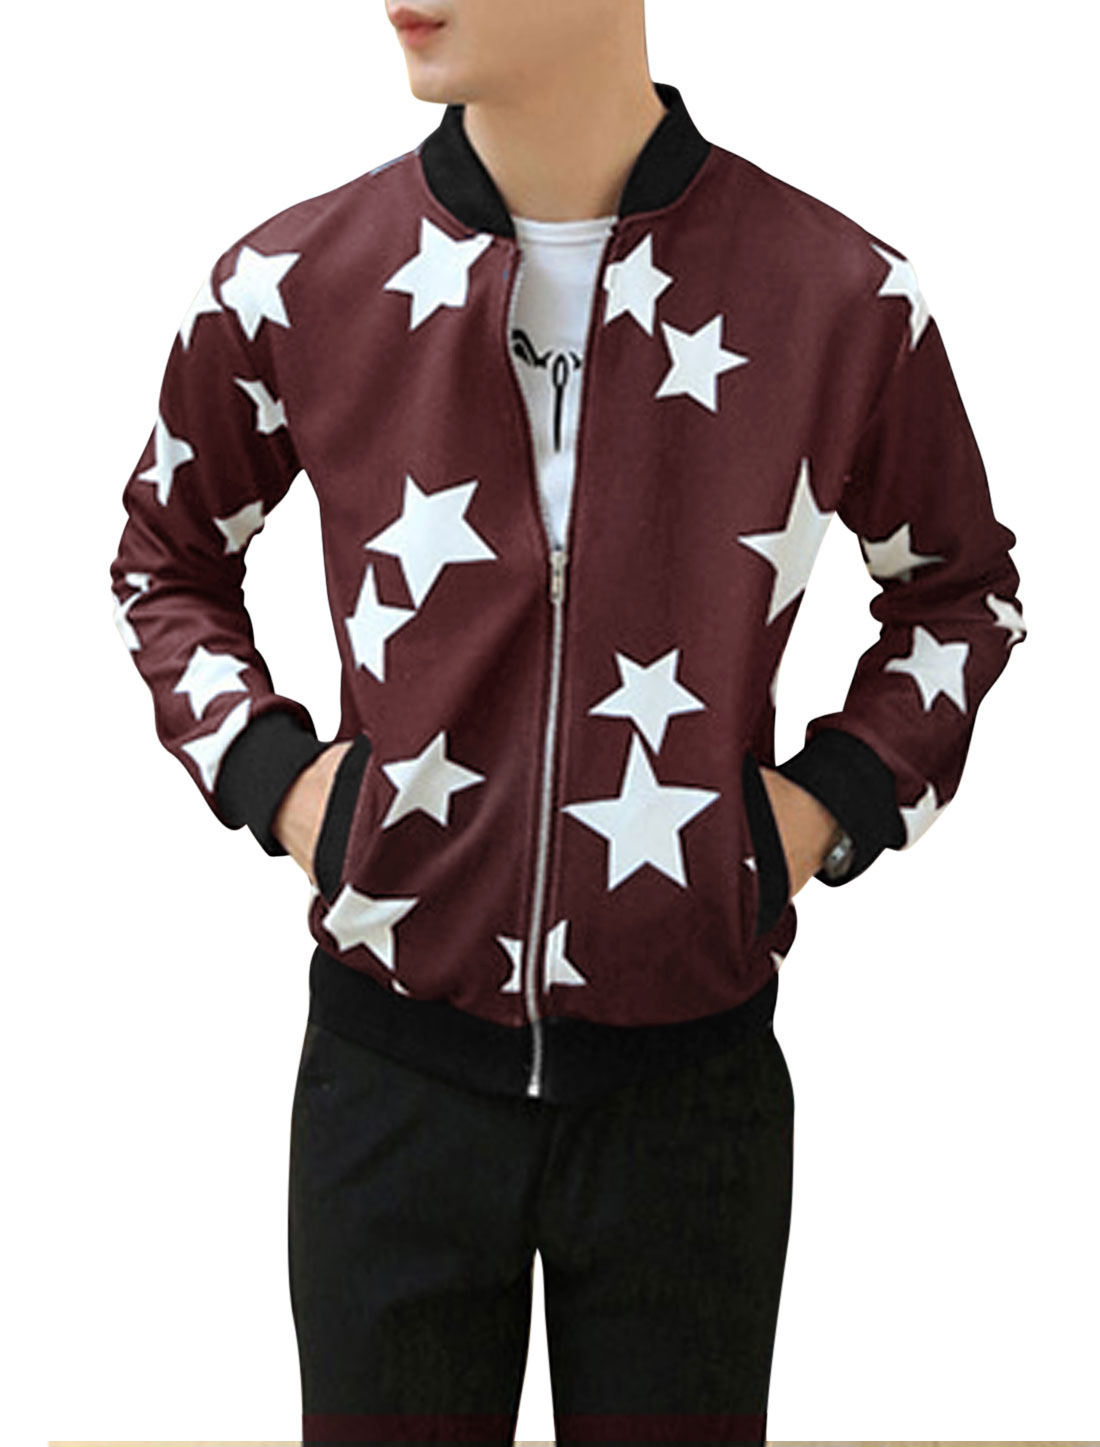 Men Stars Pattern Ribbed Trim Two Pockets Front Fashion Jacket Burgundy M